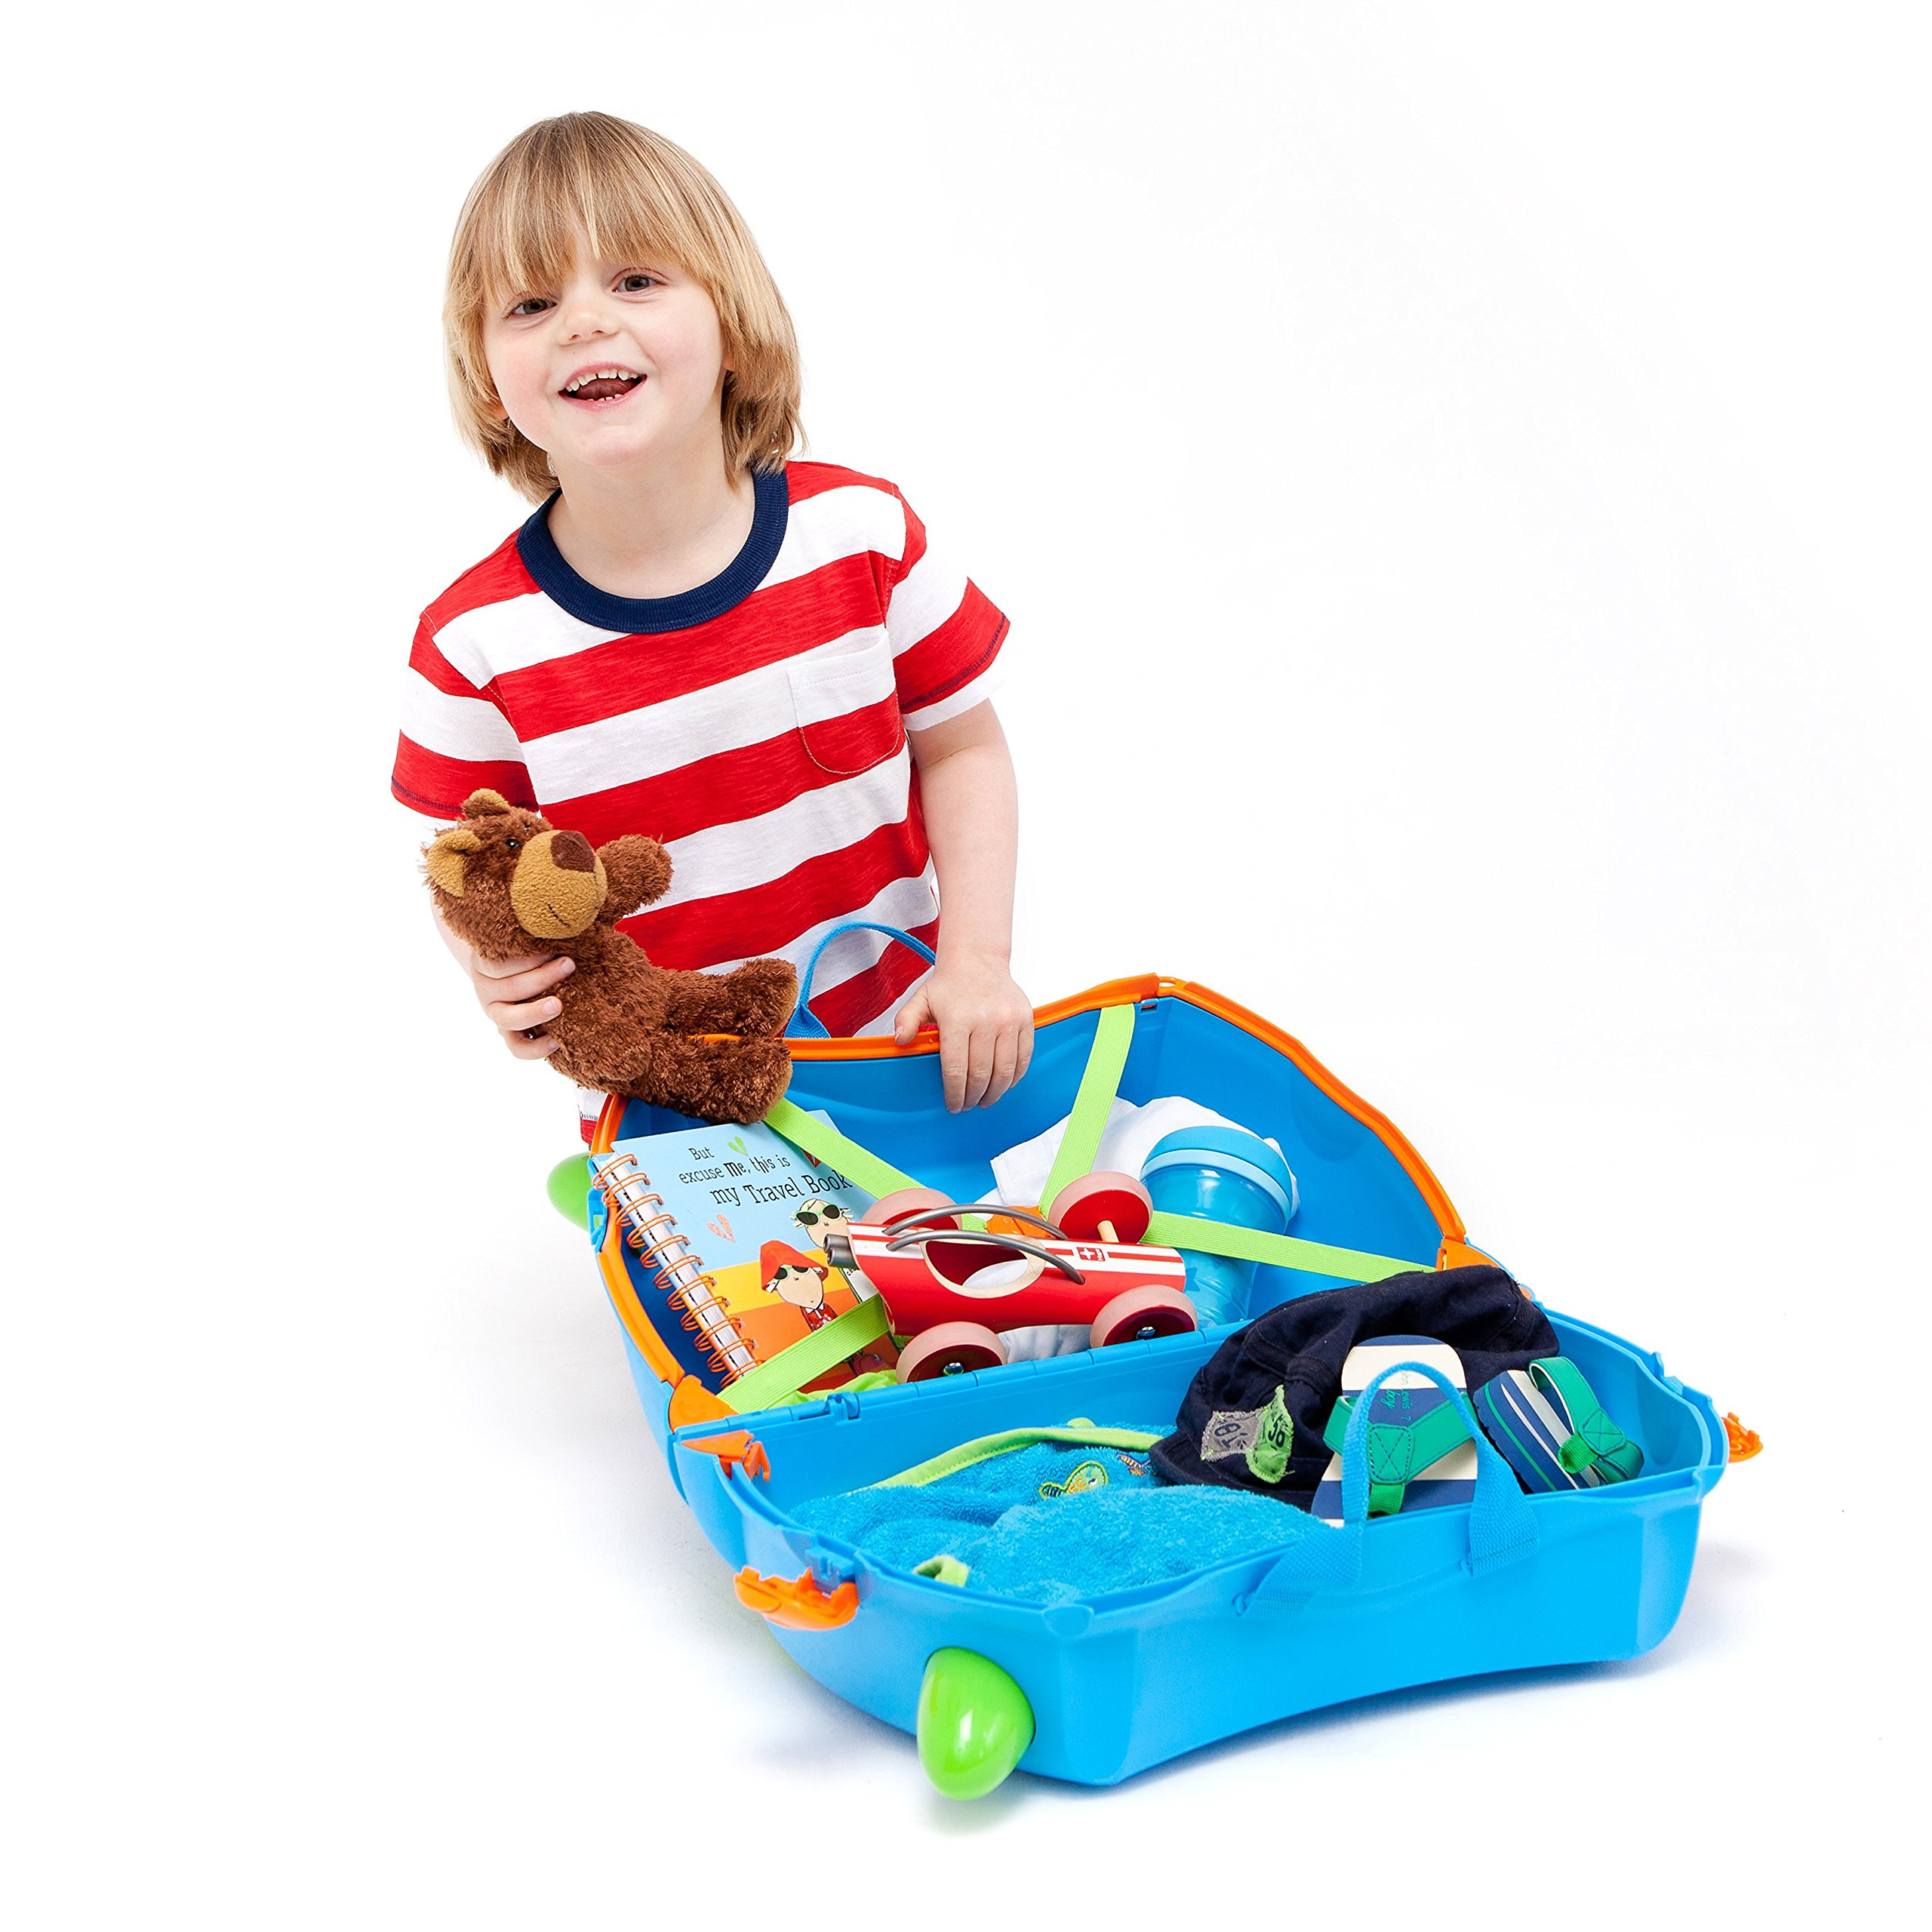 Trunki Original Kids Ride-On Suitcase and Carry-On - Terrance (Blue) by Trunki (Image #4)